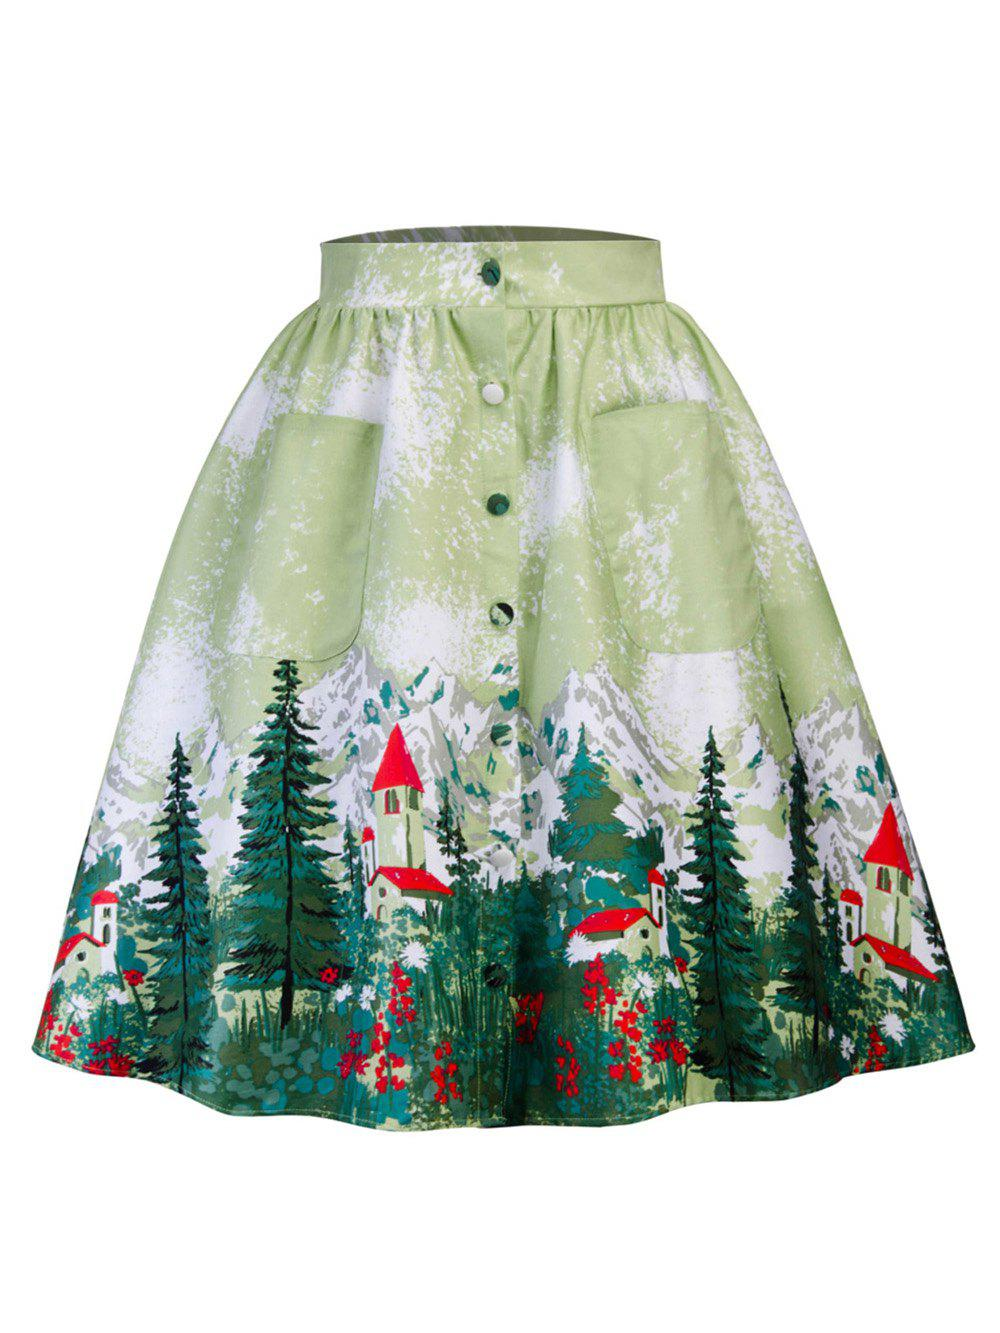 Latest Hepburn Vintage Series Women Skirt Spring And Summer Trees Printing Button Fly Pocket Design Corset Retro Skirt